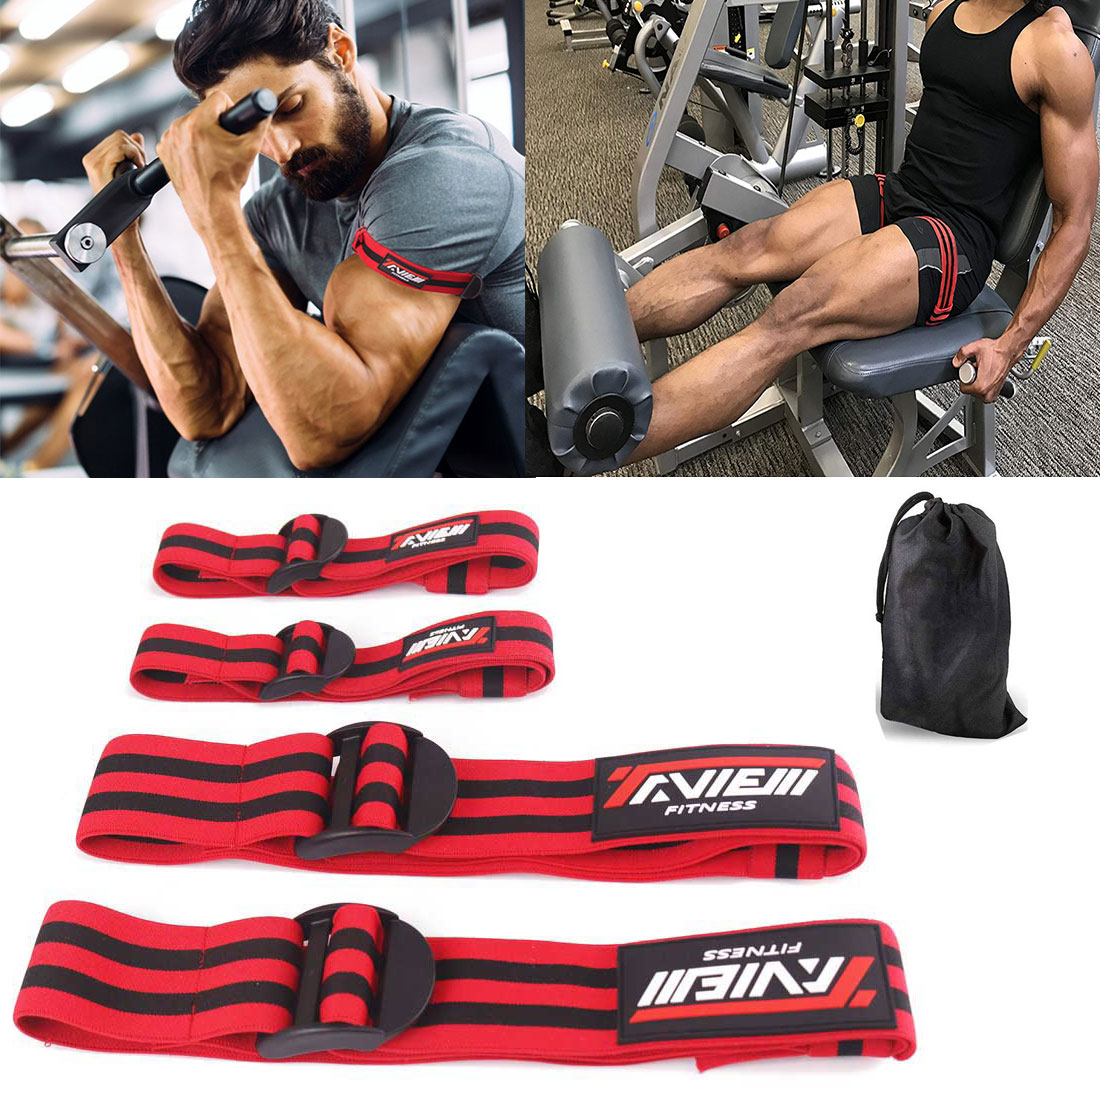 Fitness Occlusion Gym Bands Bodybuilding Weightlifting Blood Flow Restriction Bands Arm Leg Wraps Muscle Train Gym Equipmen